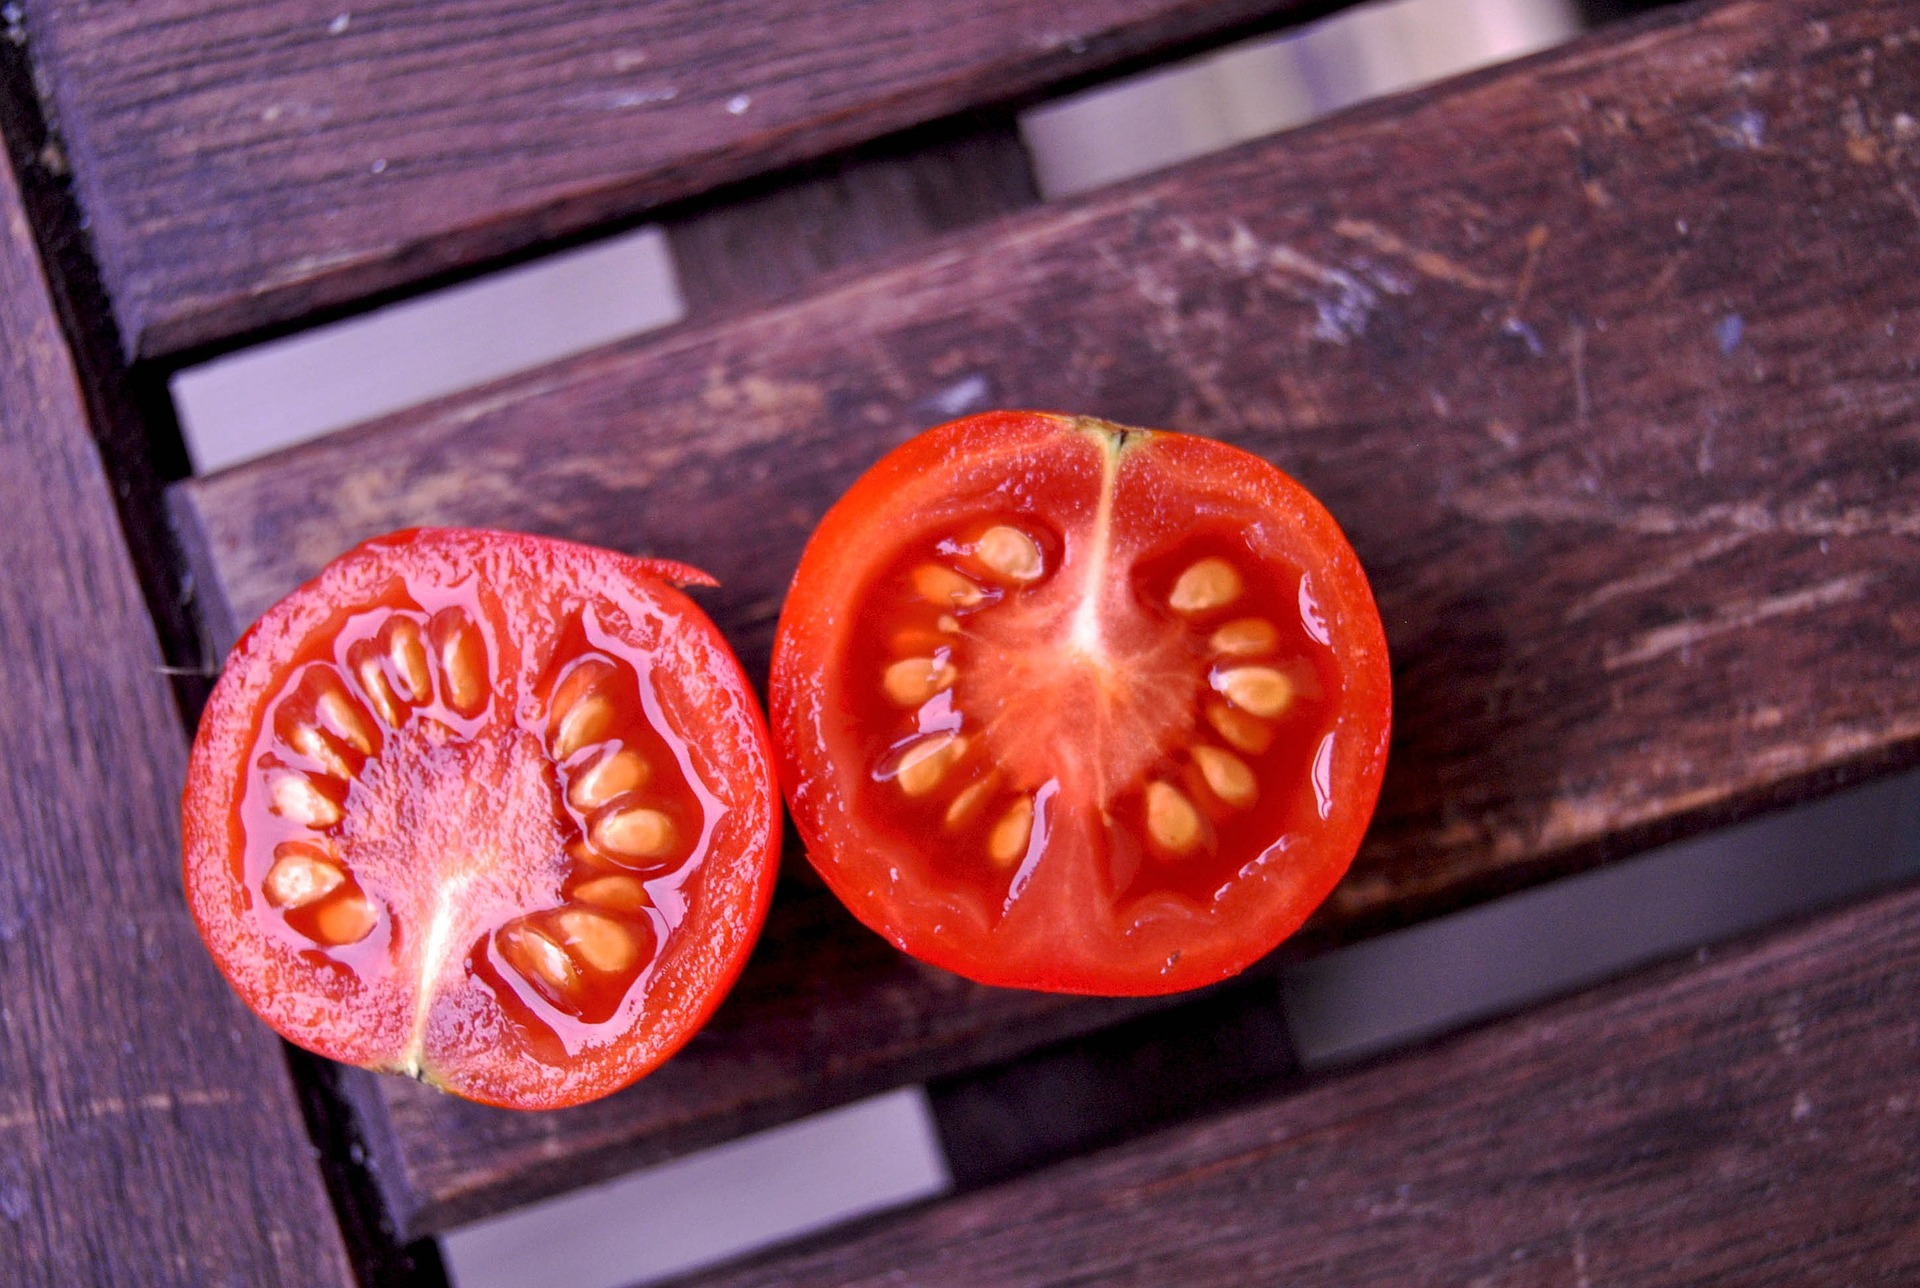 Tomato with seeds -927771_1920 (1).jpg